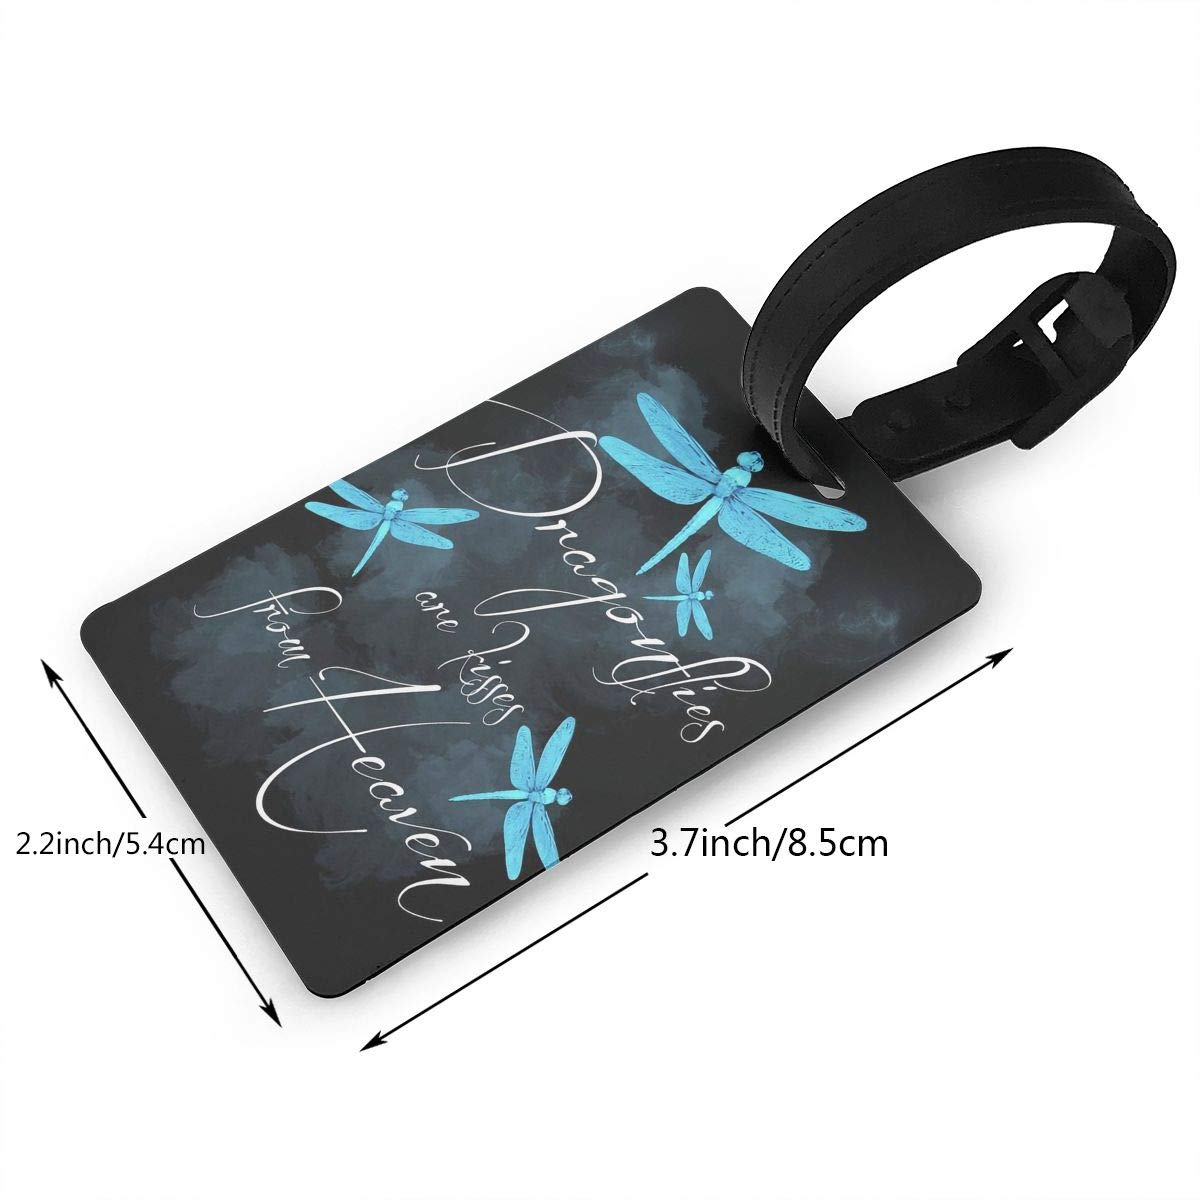 Dragonfly Pattern Cruise Luggage Tag For Suitcase Bag Accessories 2 Pack Luggage Tags